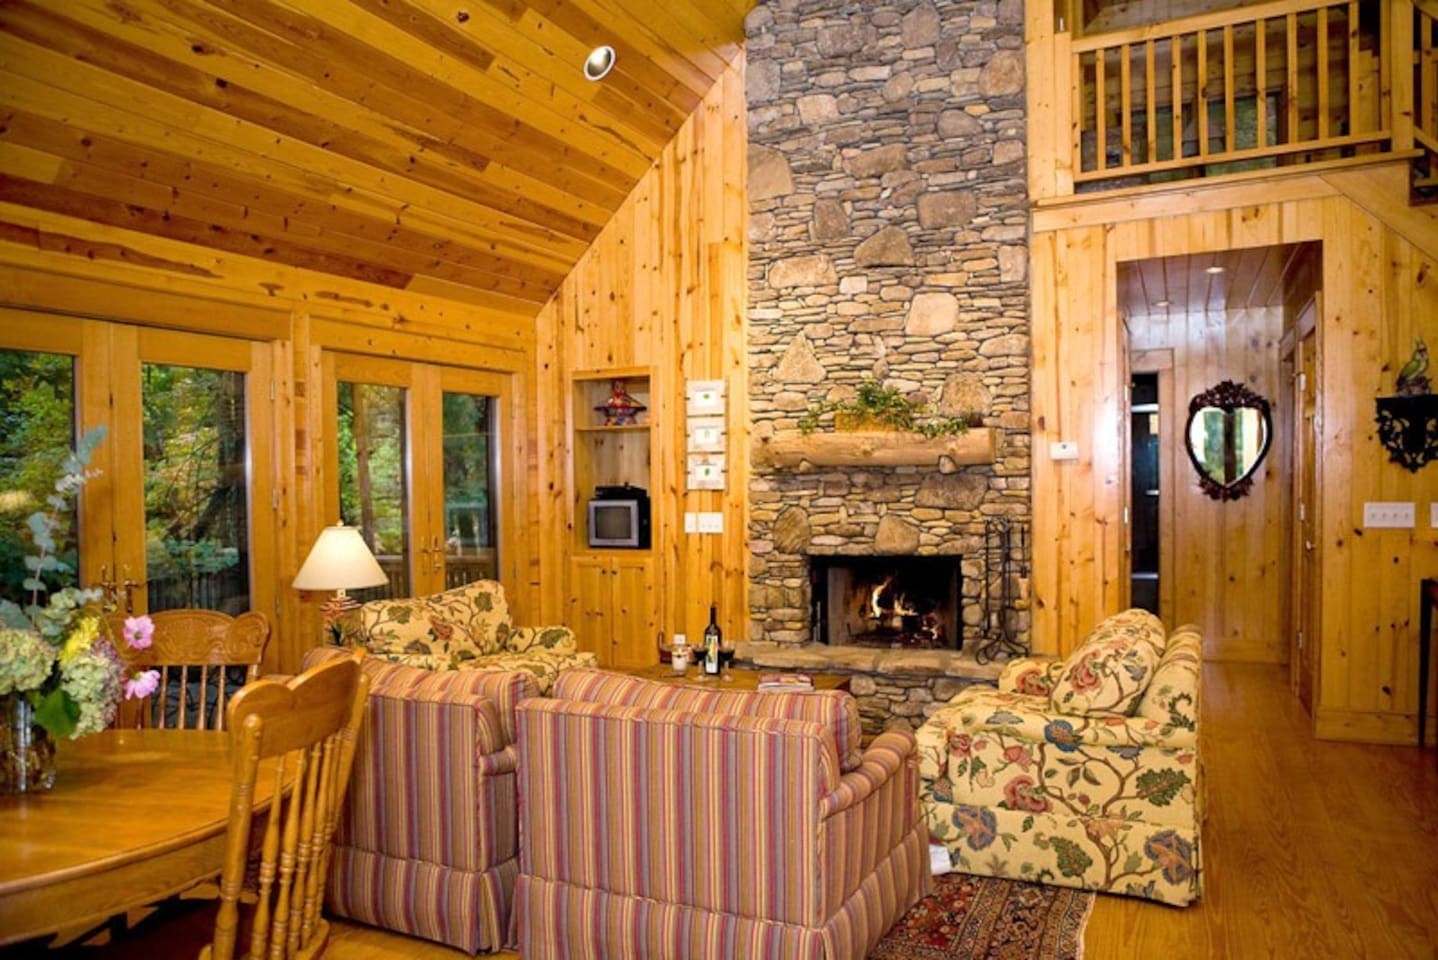 The living room is enhanced with a stone fireplace, vaulted ceiling and french doors.